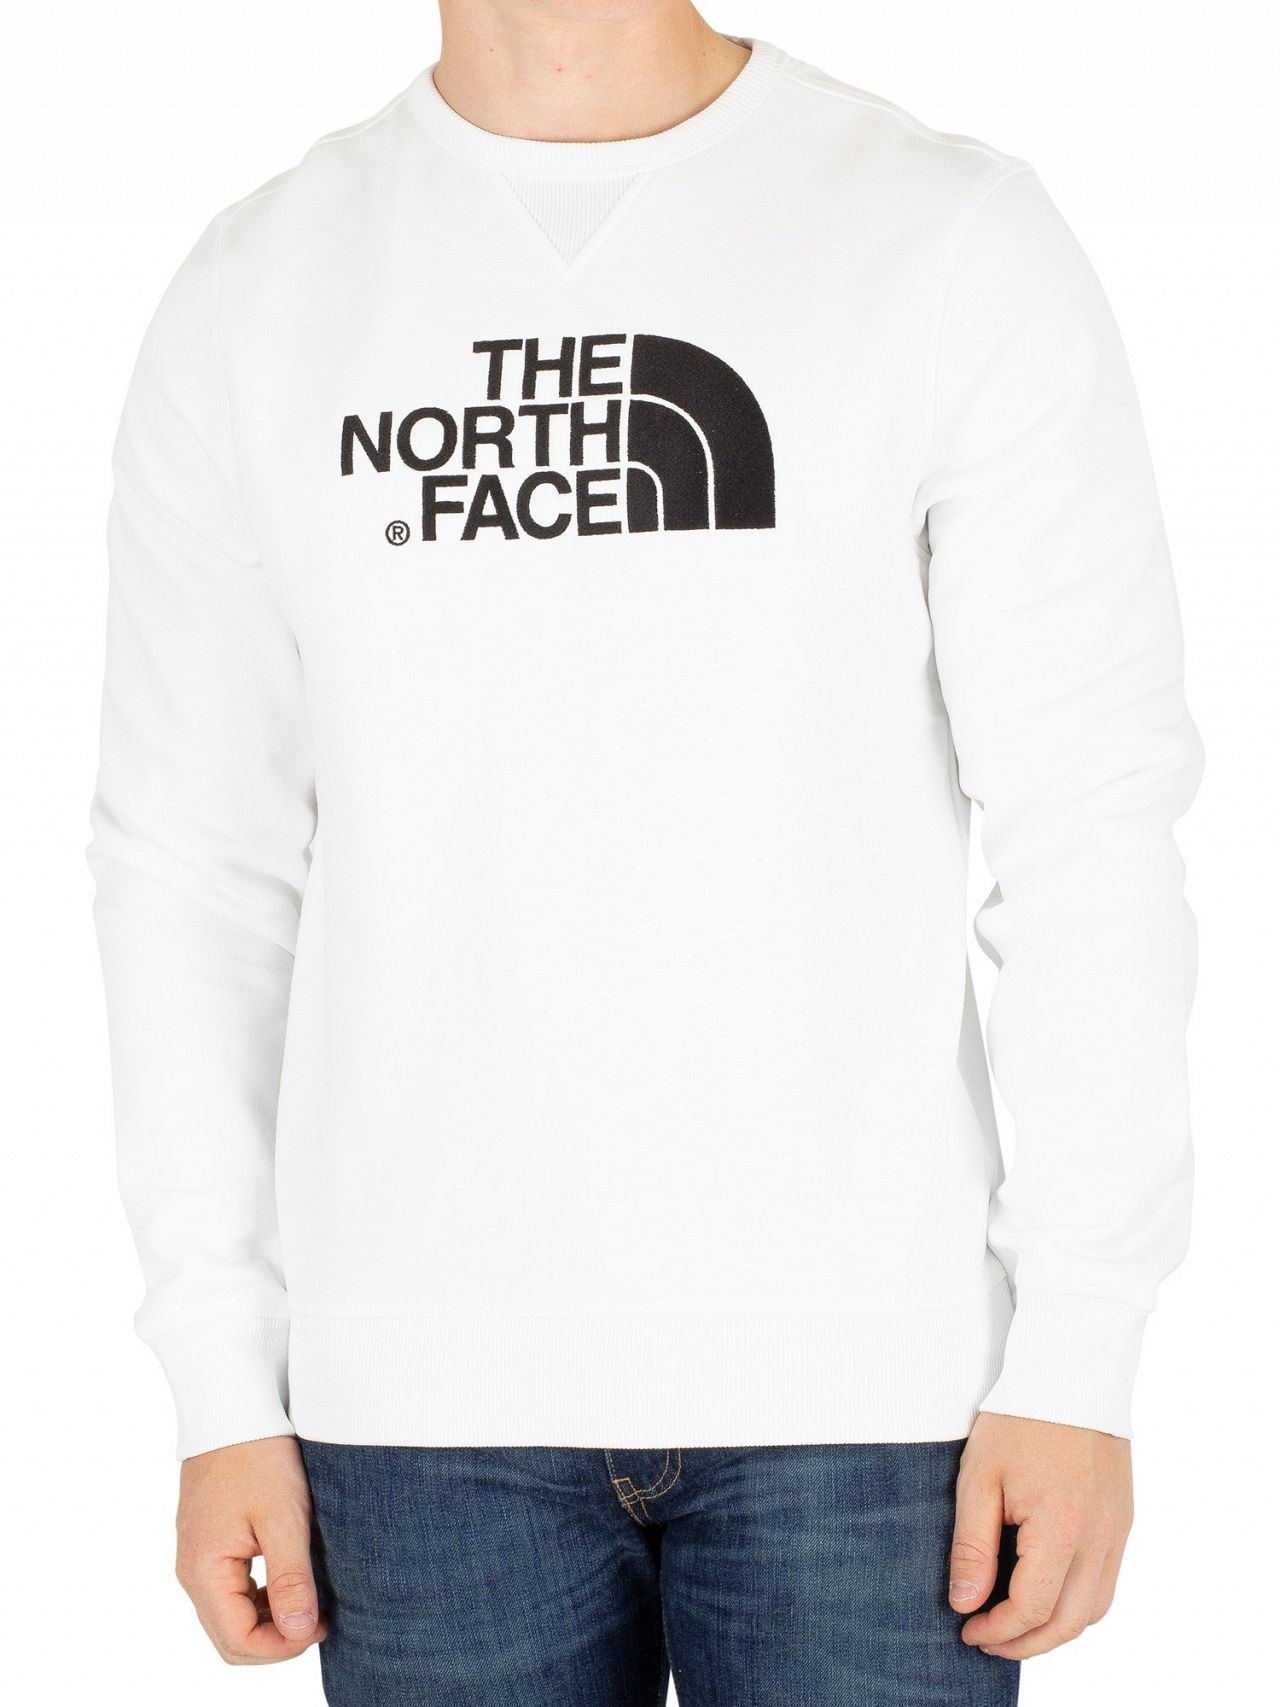 07fdbf1be The North Face White Drew Peak Sweatshirt